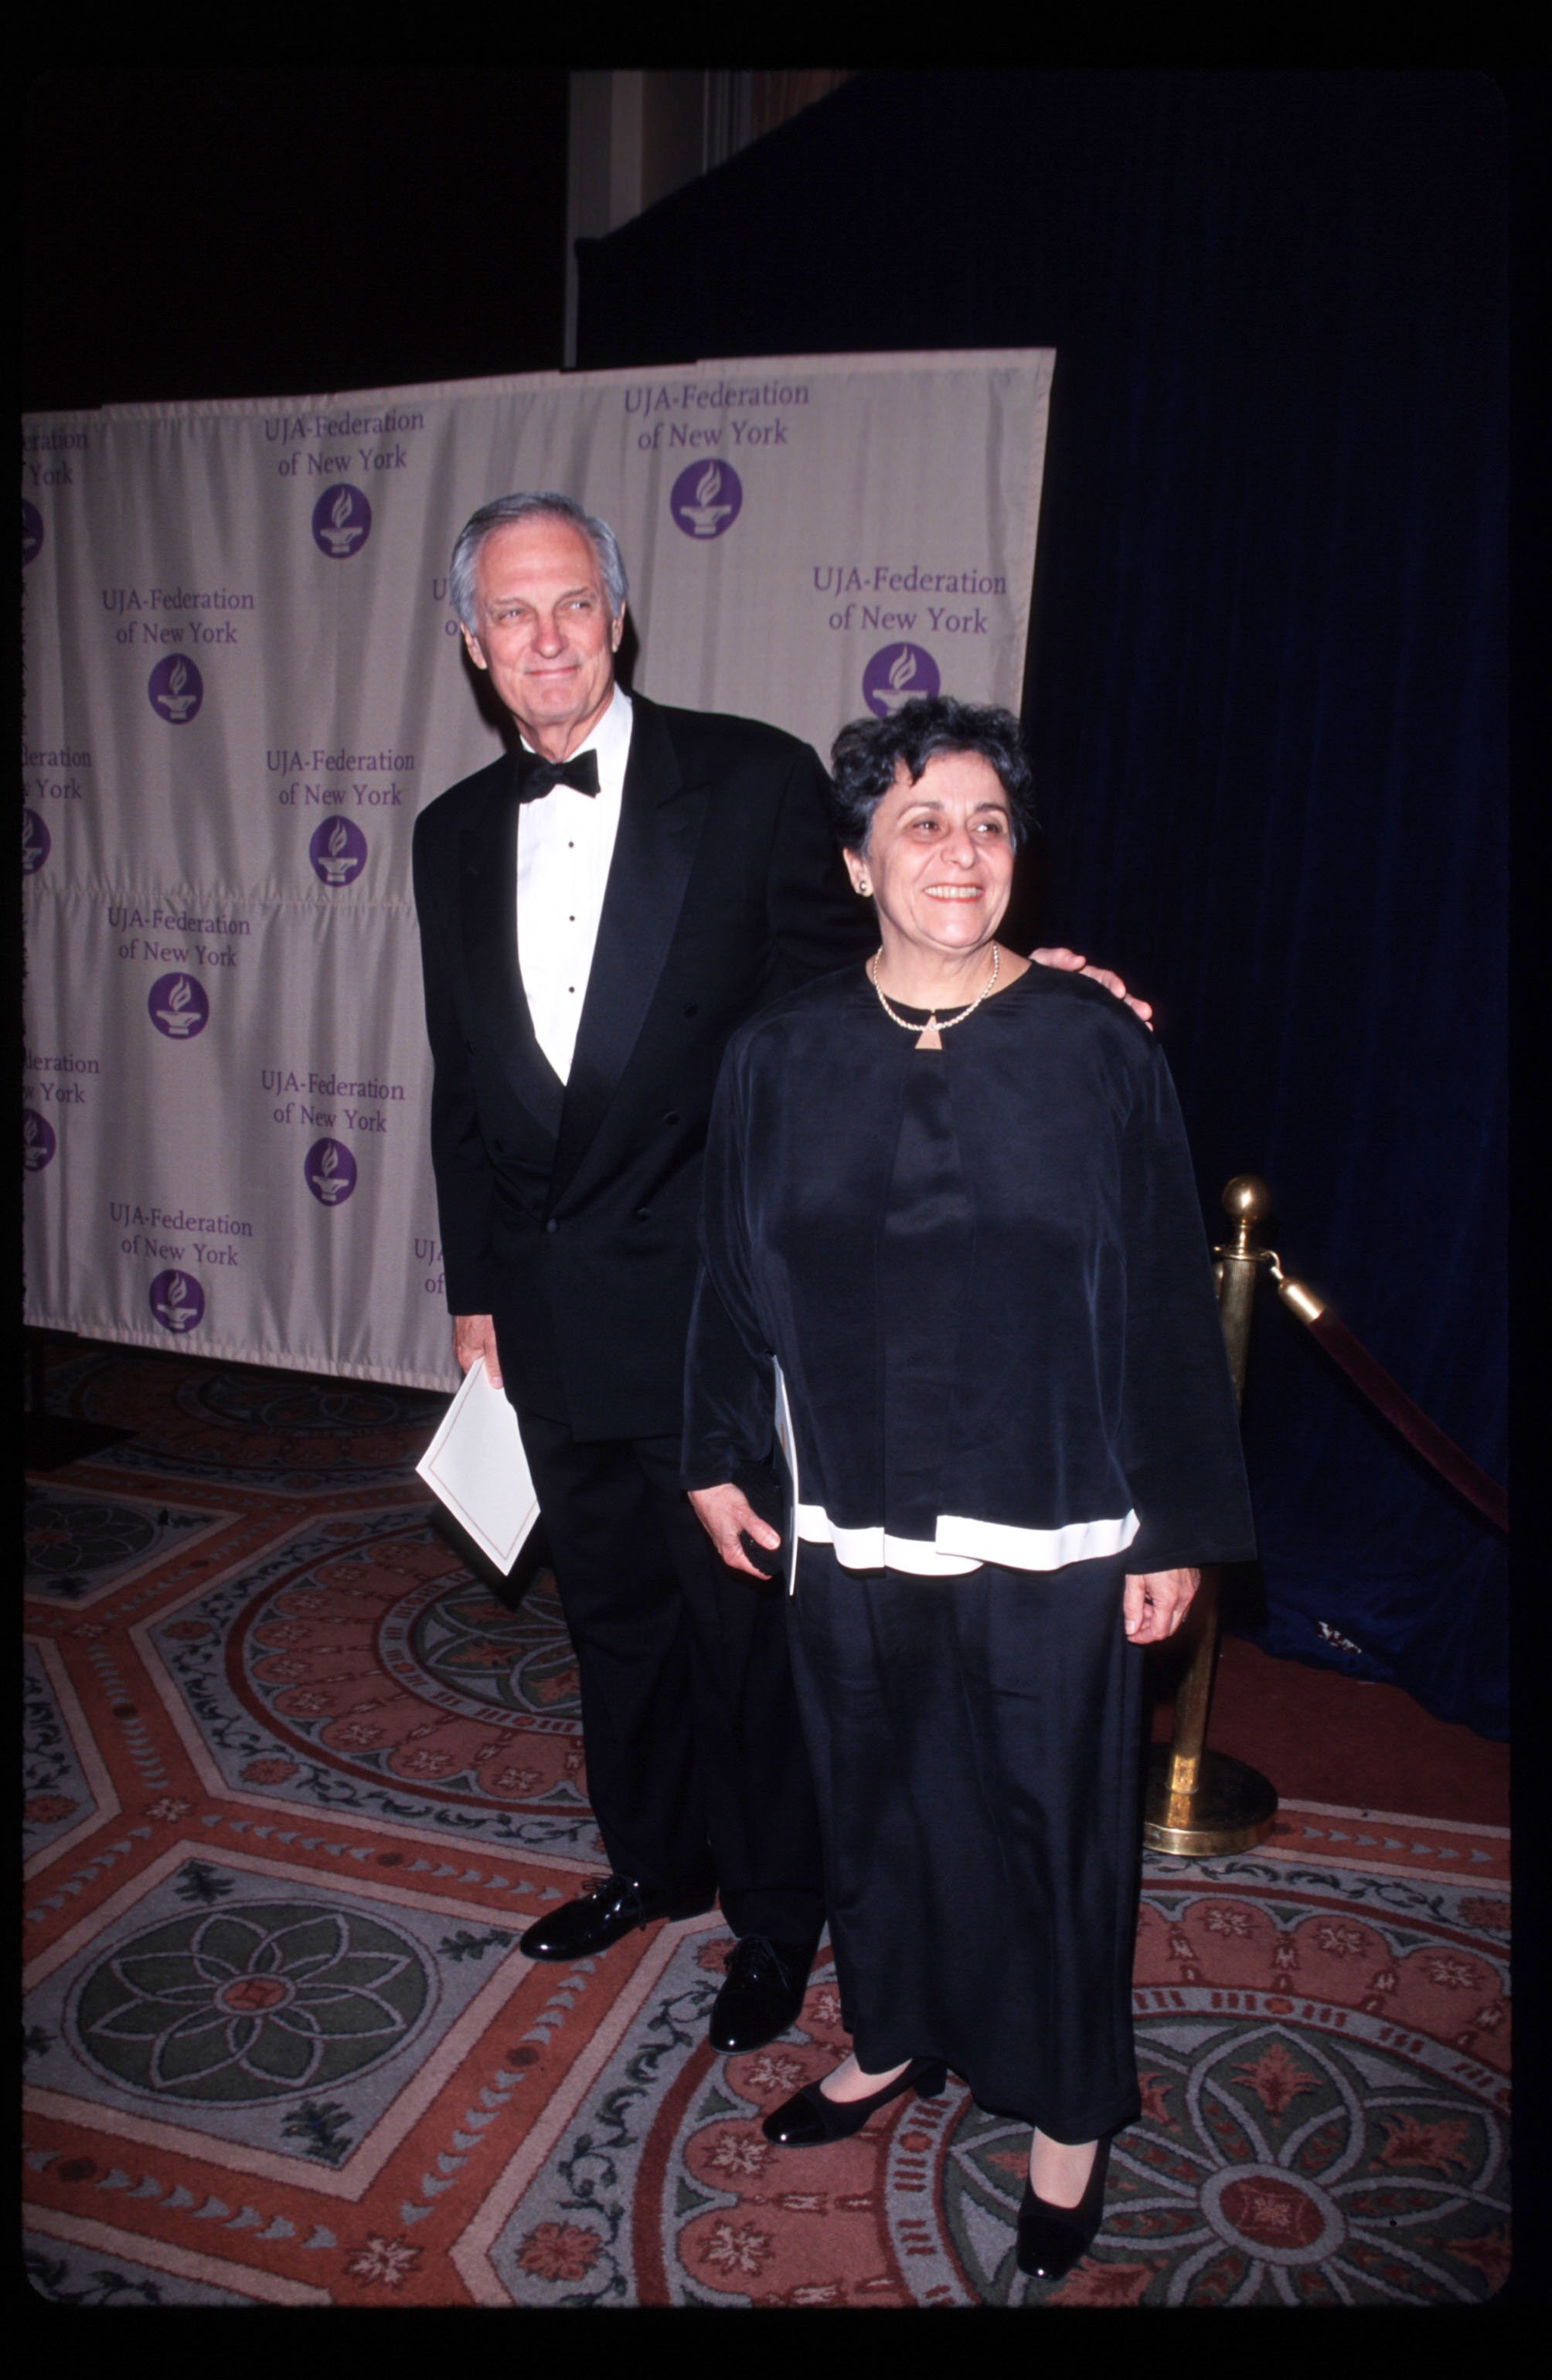 Alan Alda attends awards ceremony with his wife Arlene May 11, 1999 in New York City | Photo: GettyImages